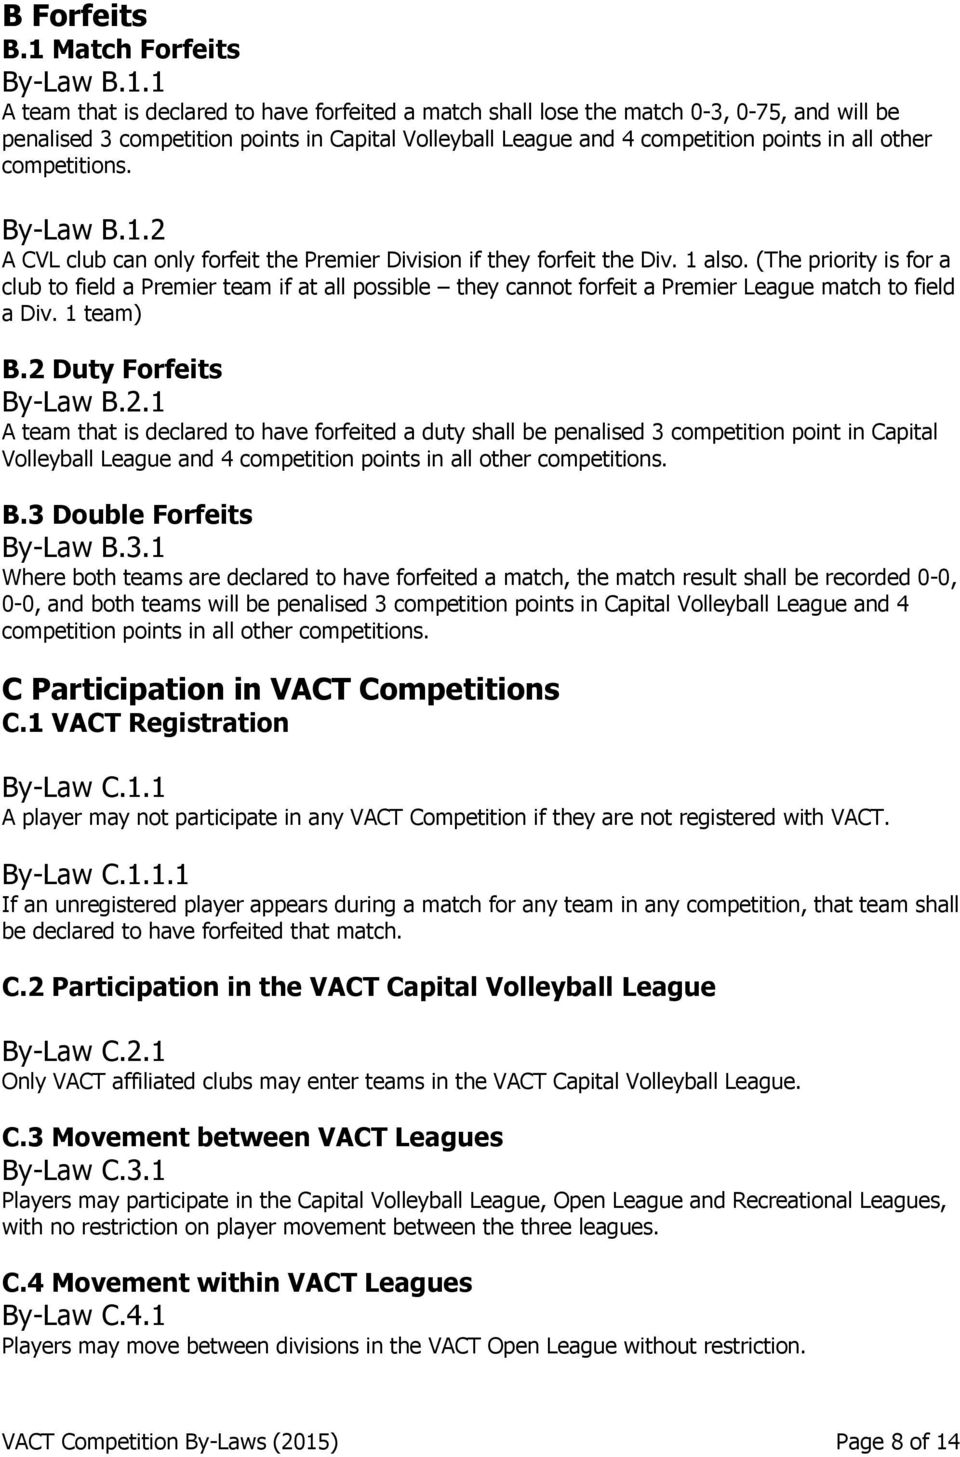 1 A team that is declared to have forfeited a match shall lose the match 0-3, 0-75, and will be penalised 3 competition points in Capital Volleyball League and 4 competition points in all other